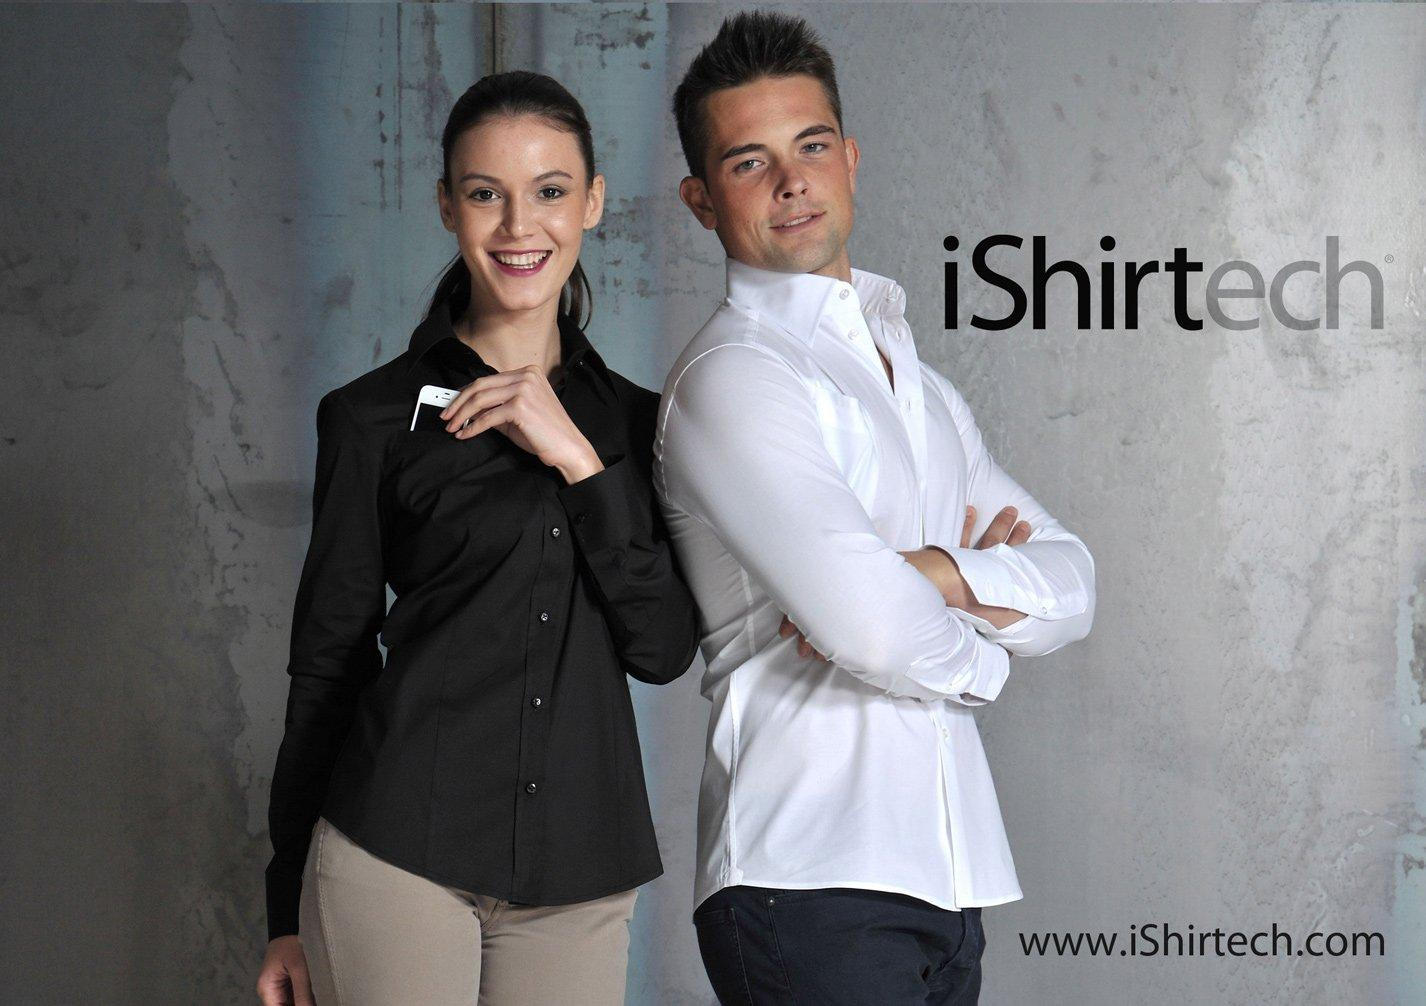 iShirtech: camicie e t-shirt con stile e innovazione Made in Italy [GADGET OF THE WEEK]